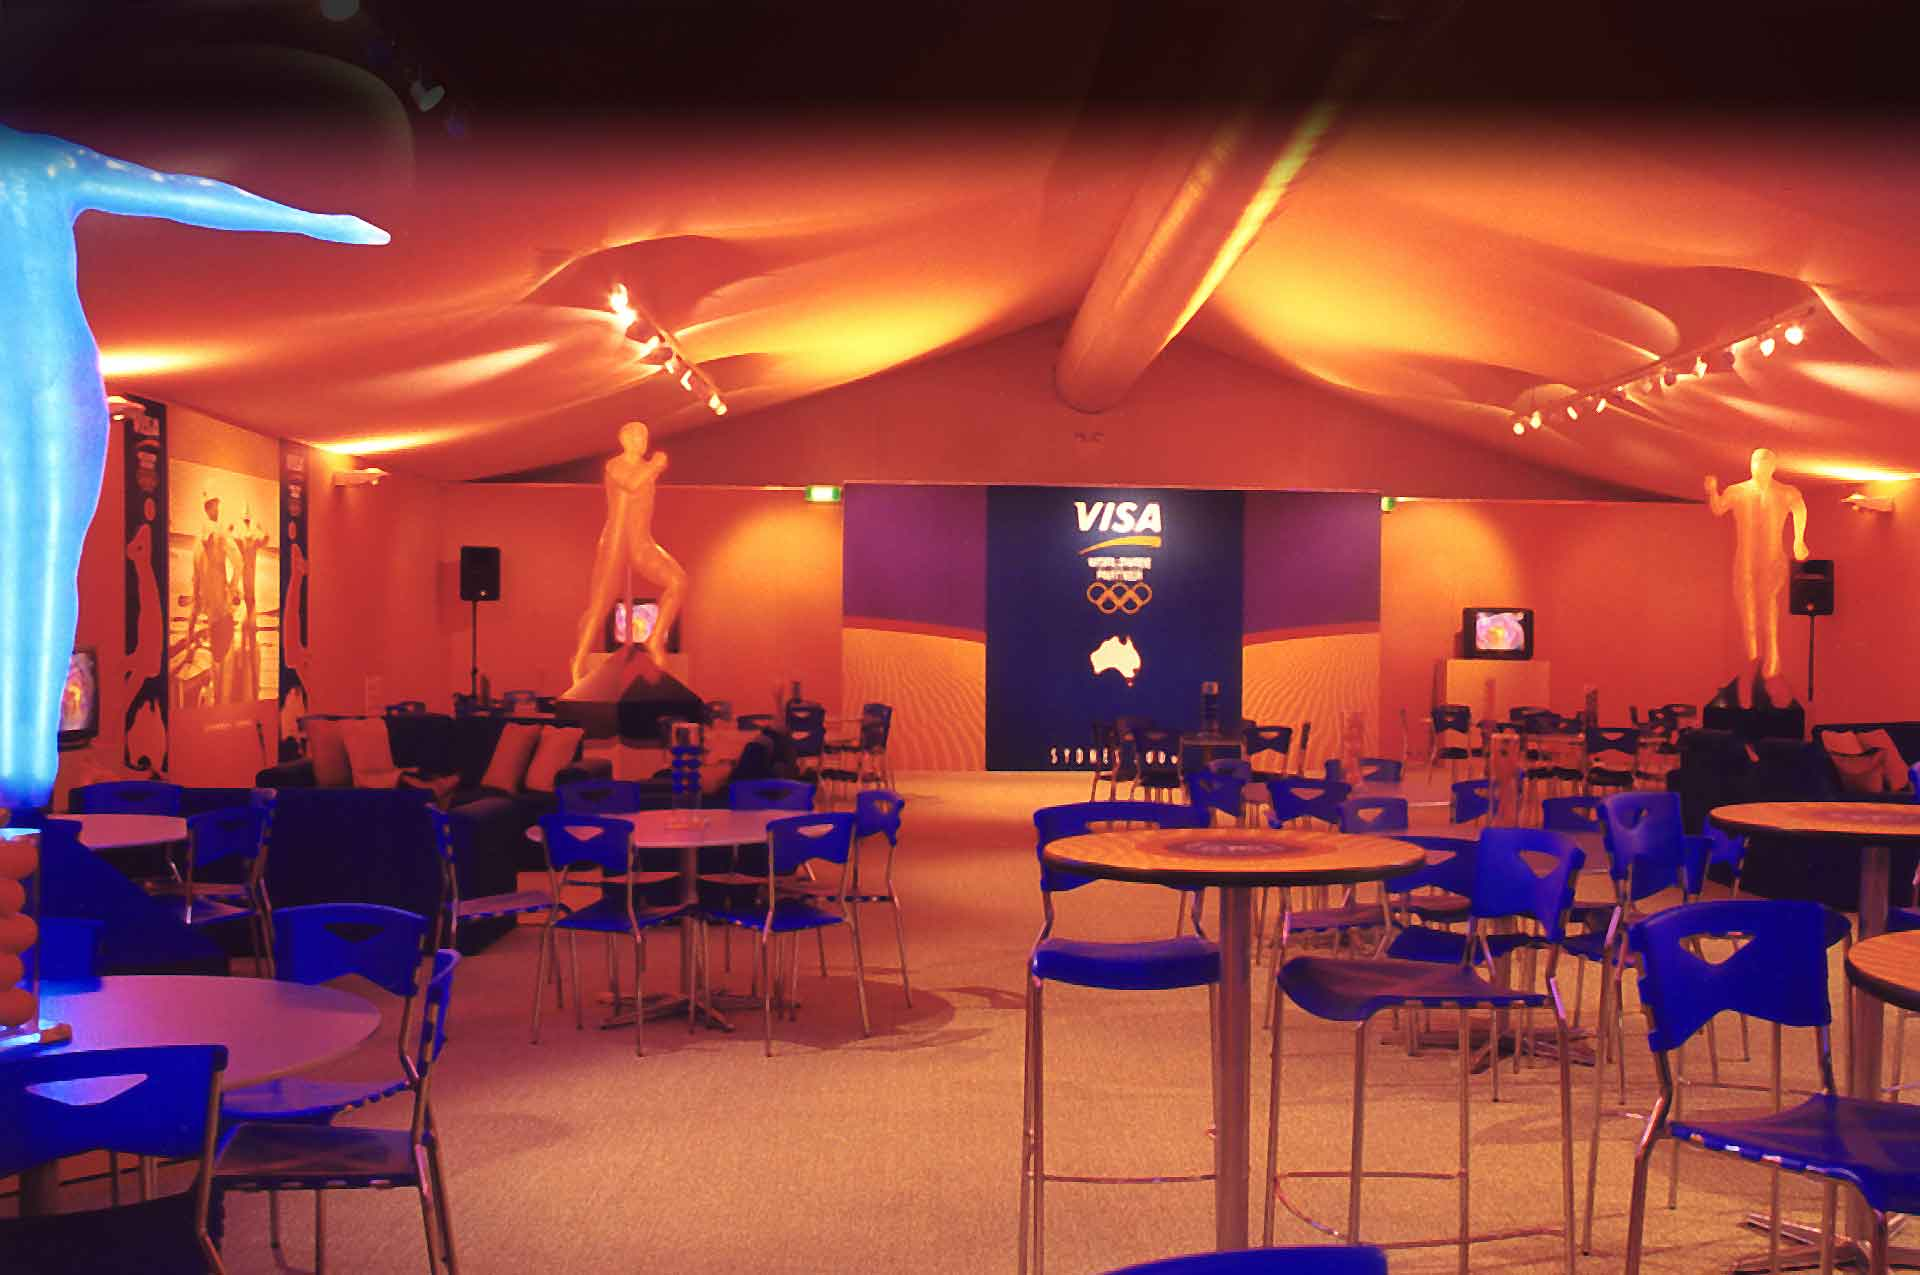 Visa International corporate tent